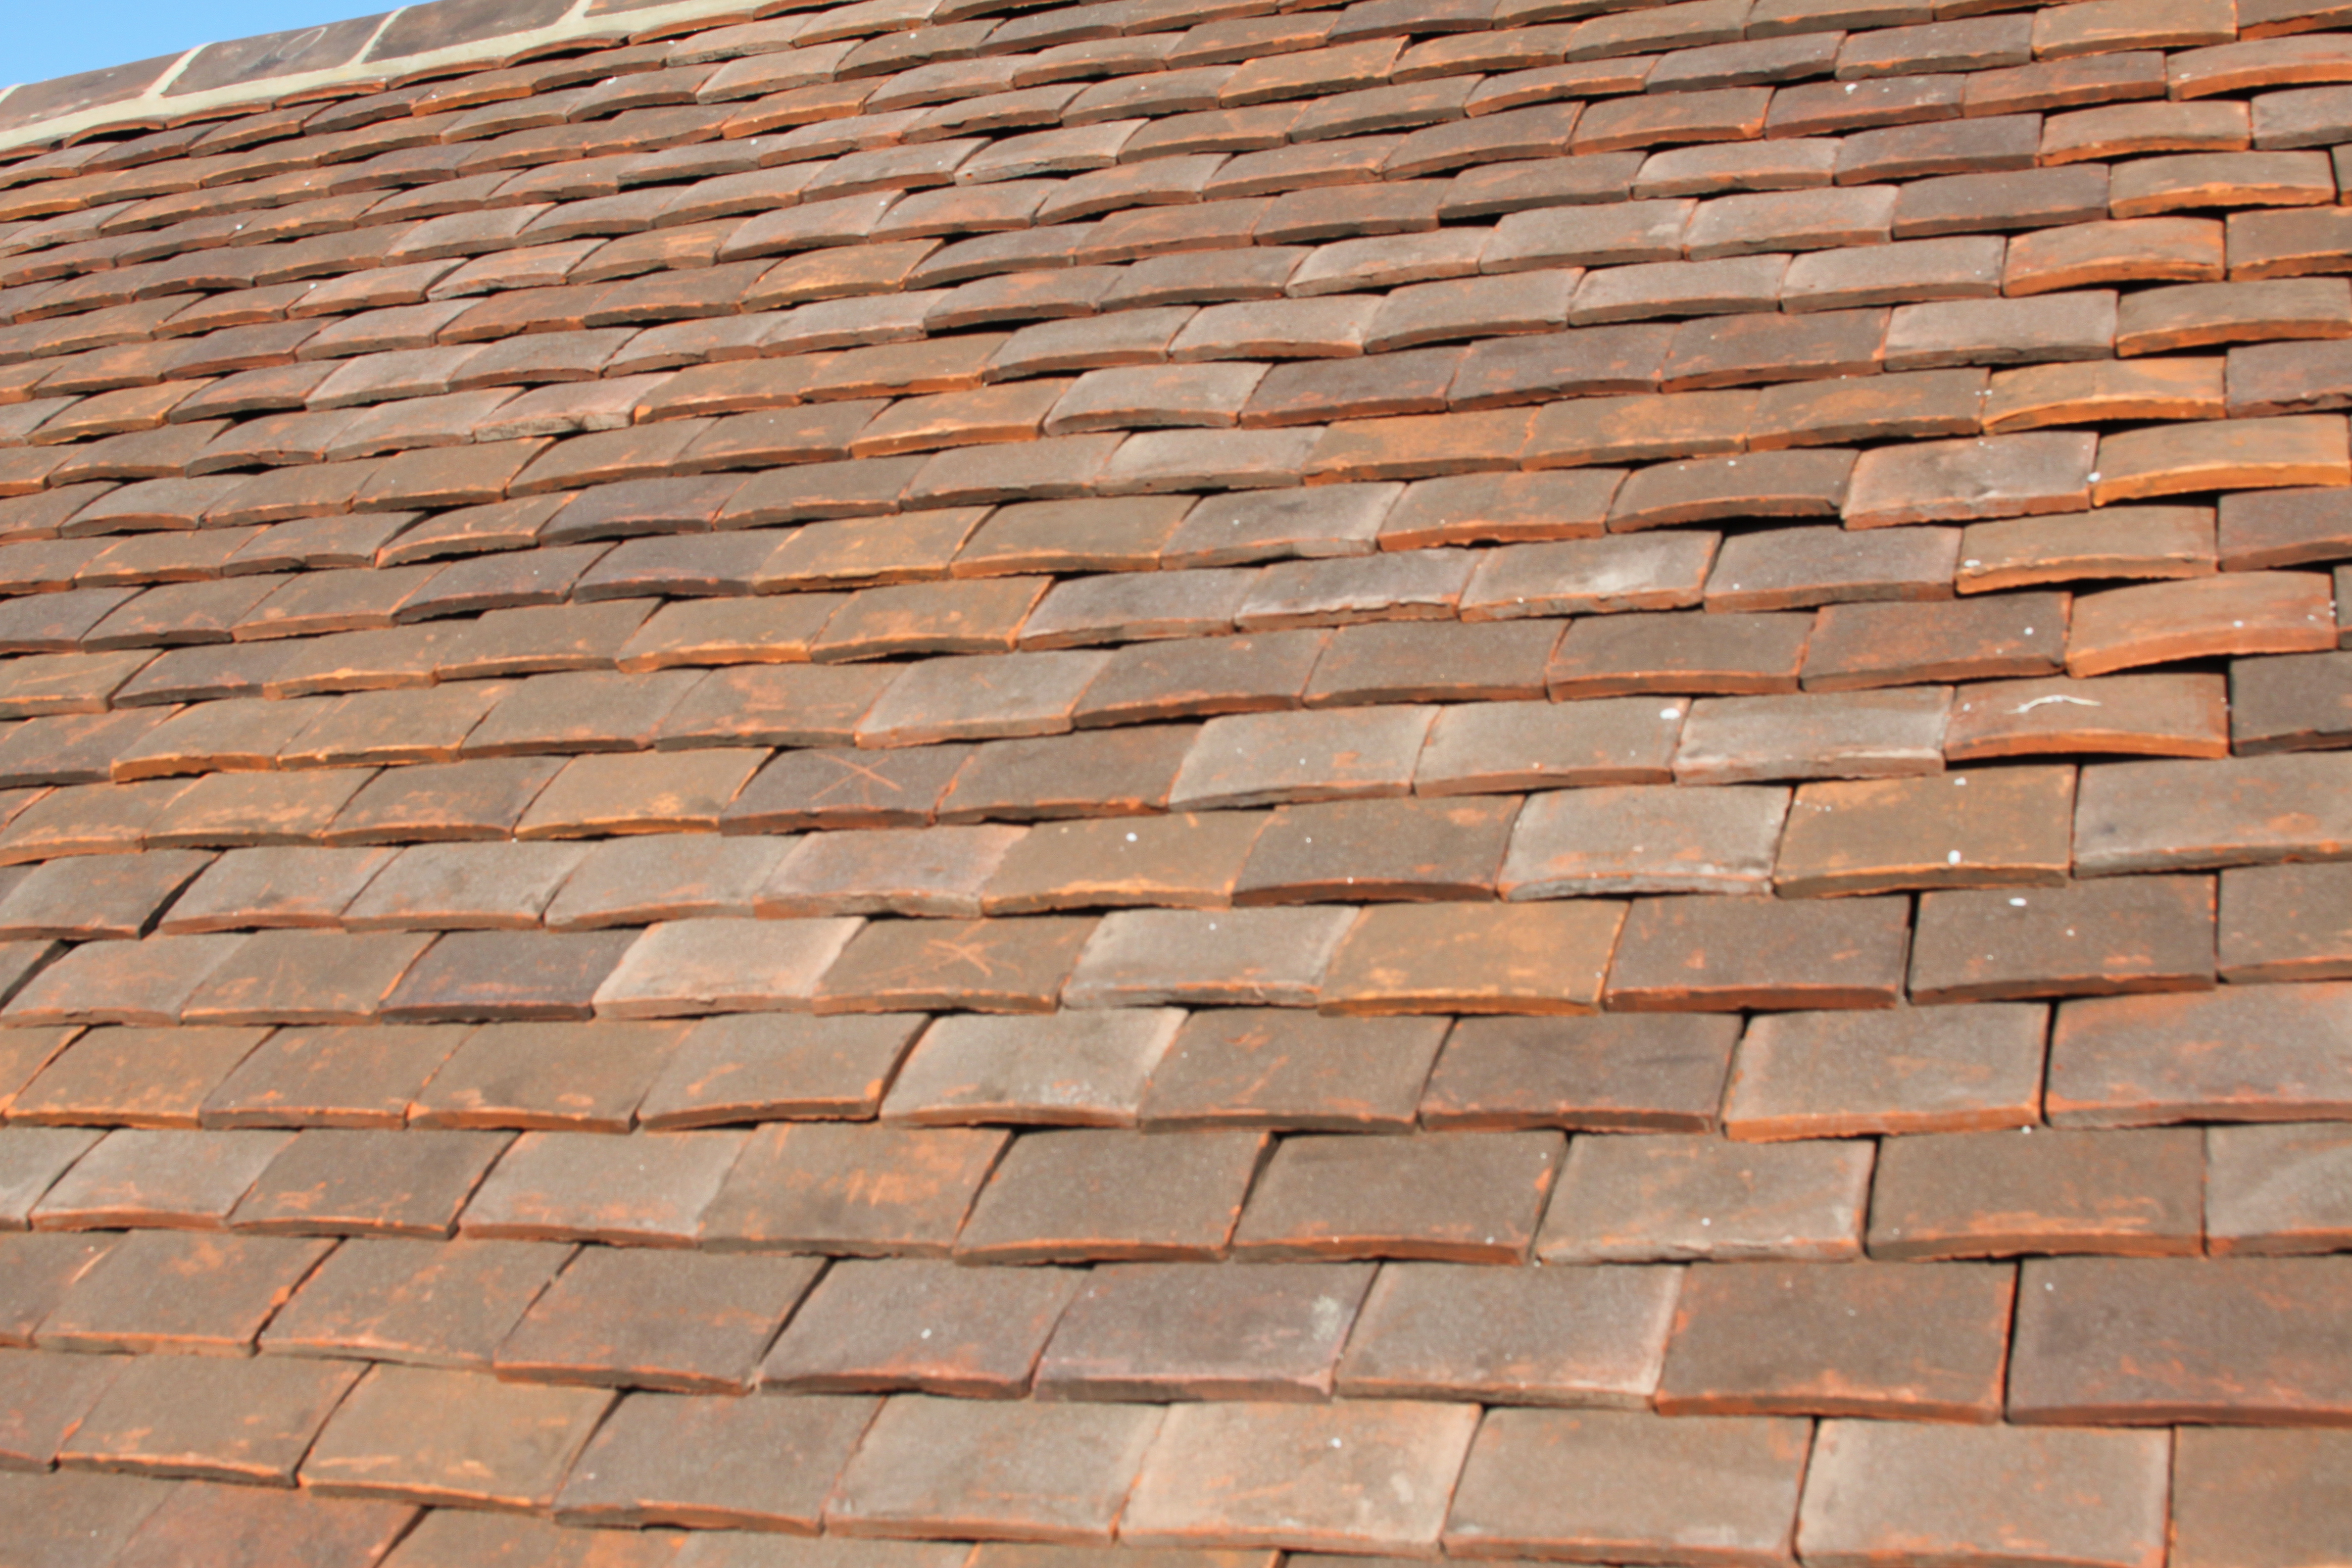 Ceramic Roof Tiles Ceramic Roof Tiles Prices And Information Tilestores Net Ceramic Roof